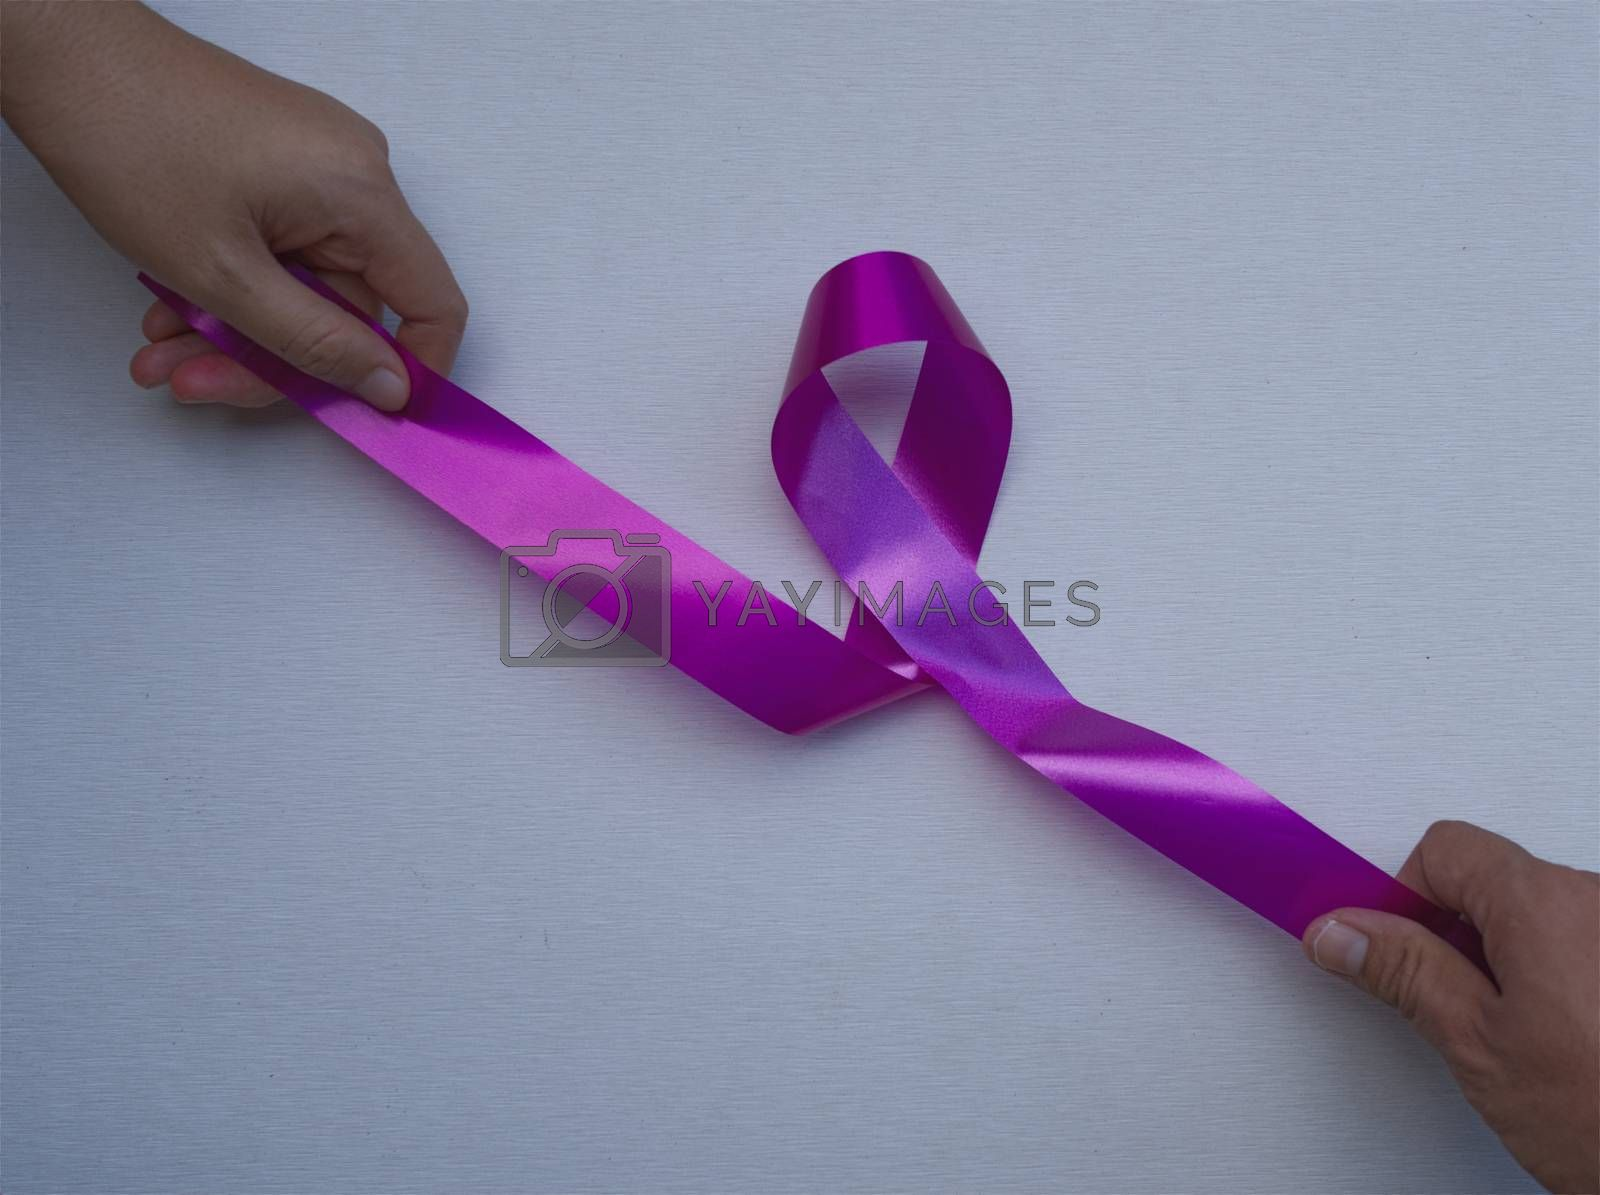 Abstract women hands and men hands pulling pink ribbons expressing breast cancer awareness day concept isolated pink background.